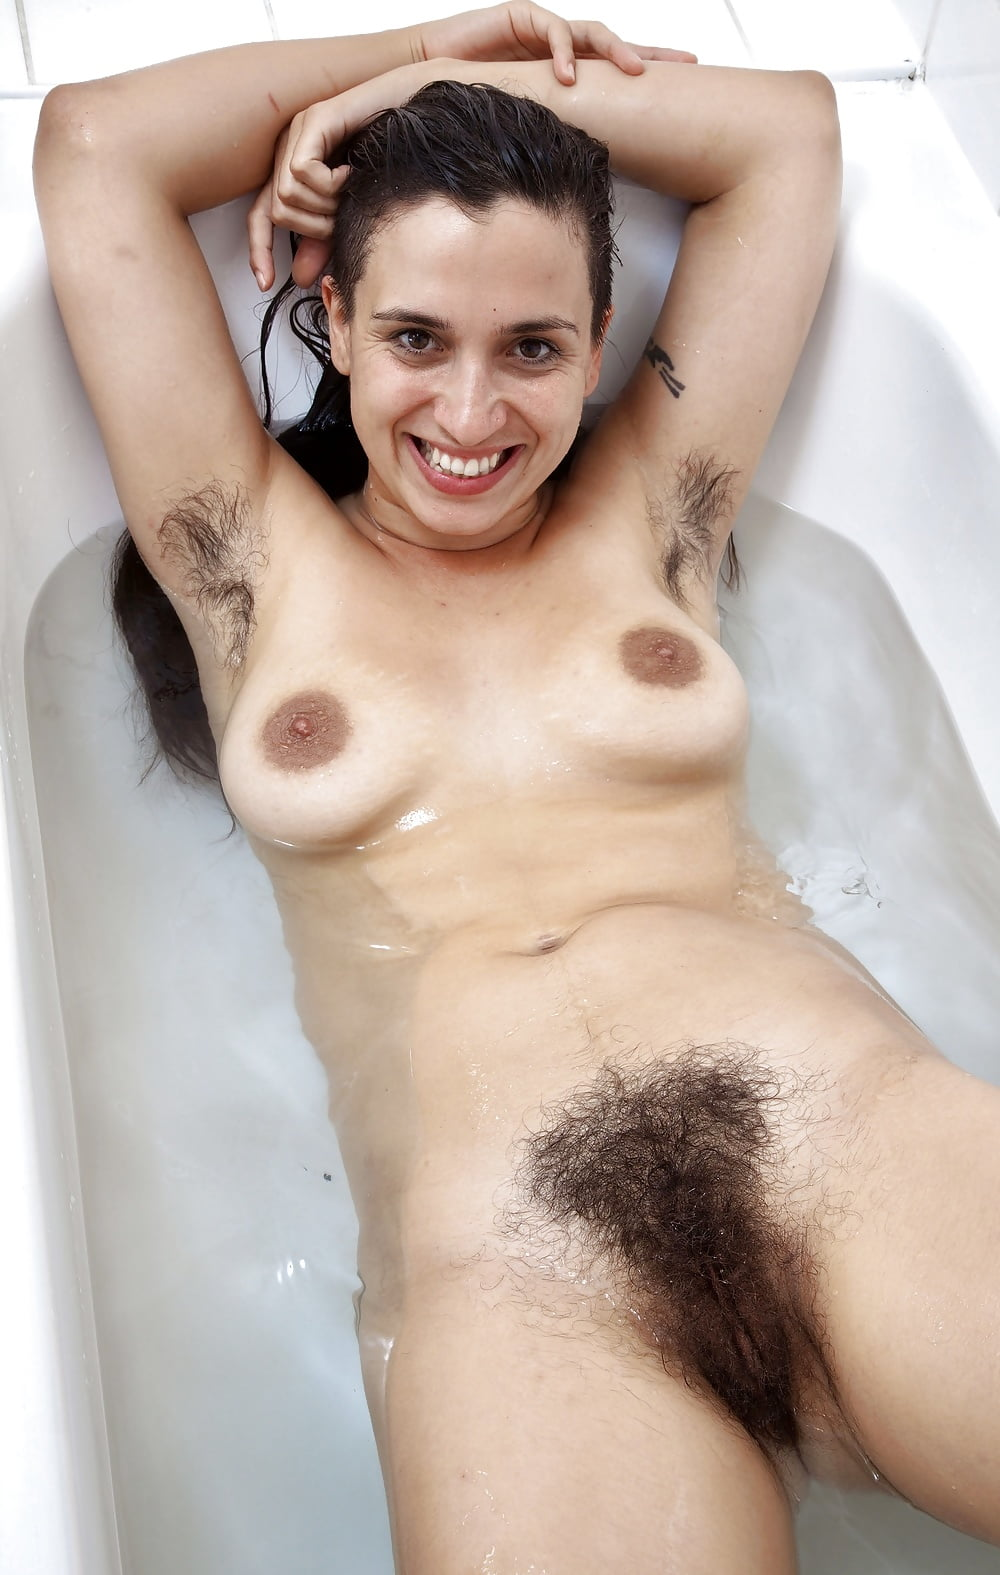 Nude dwarf hairy women in the bathroom, nudist have sex